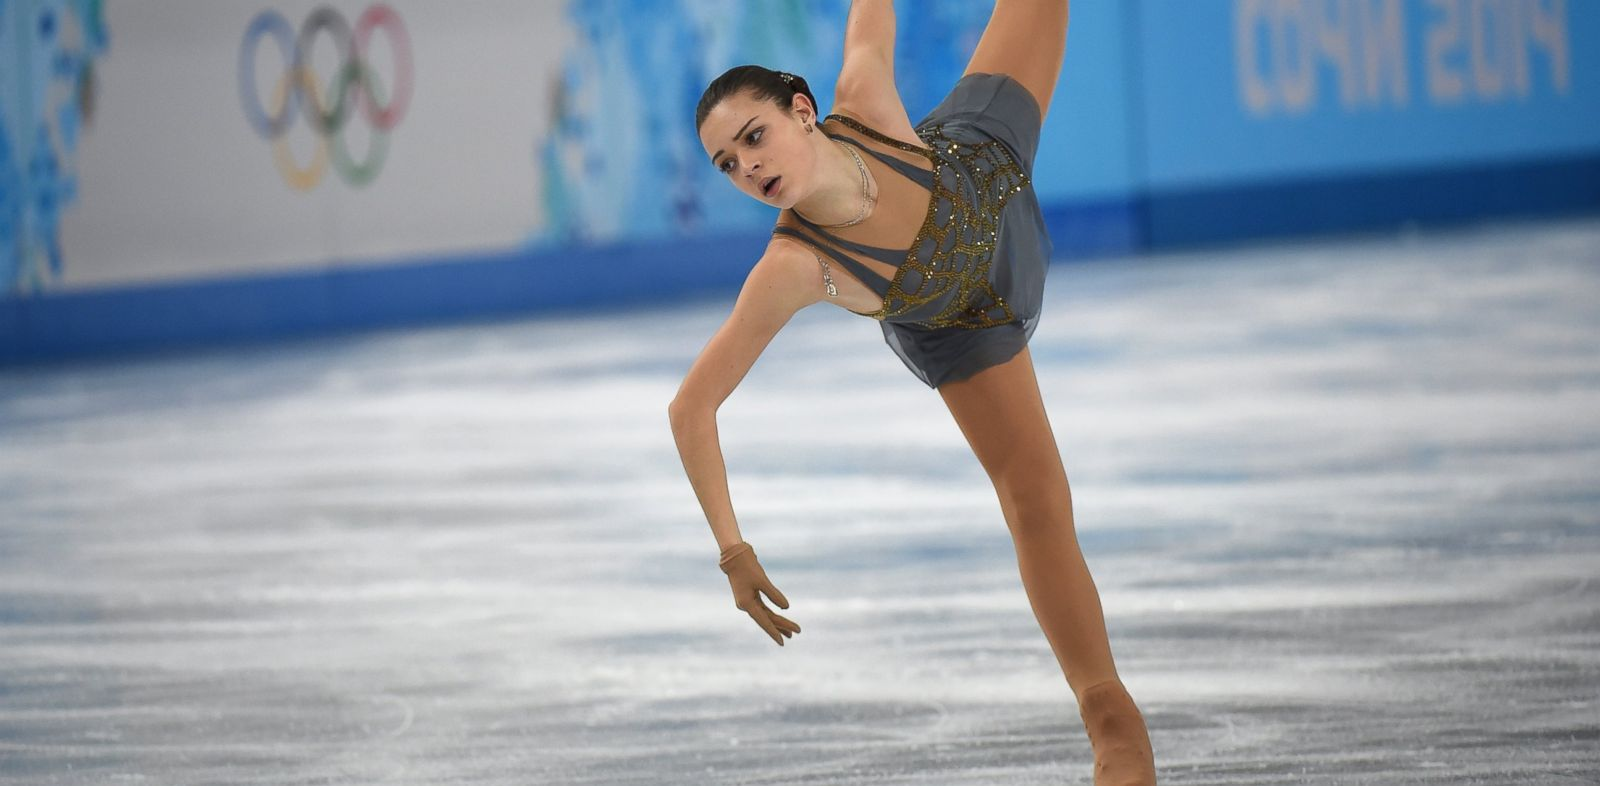 PHOTO: Adelina Sotnikova of Russia performs in the womens figure skating free program at the Iceberg Skating Palace during the Sochi Winter Olympics, Feb. 20, 2014.